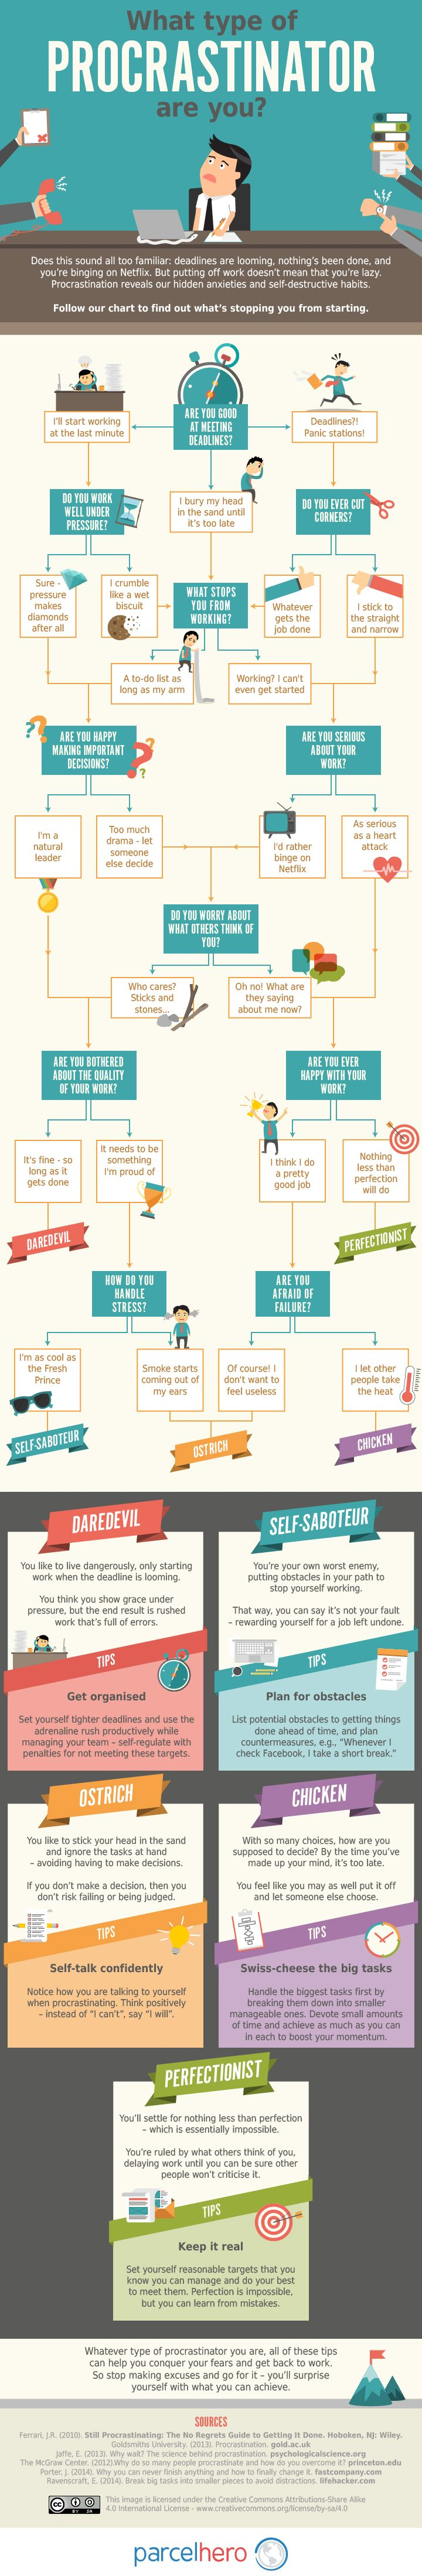 What type of procrastinator are you? I'm definitely a perfectionist type of procrastinator.